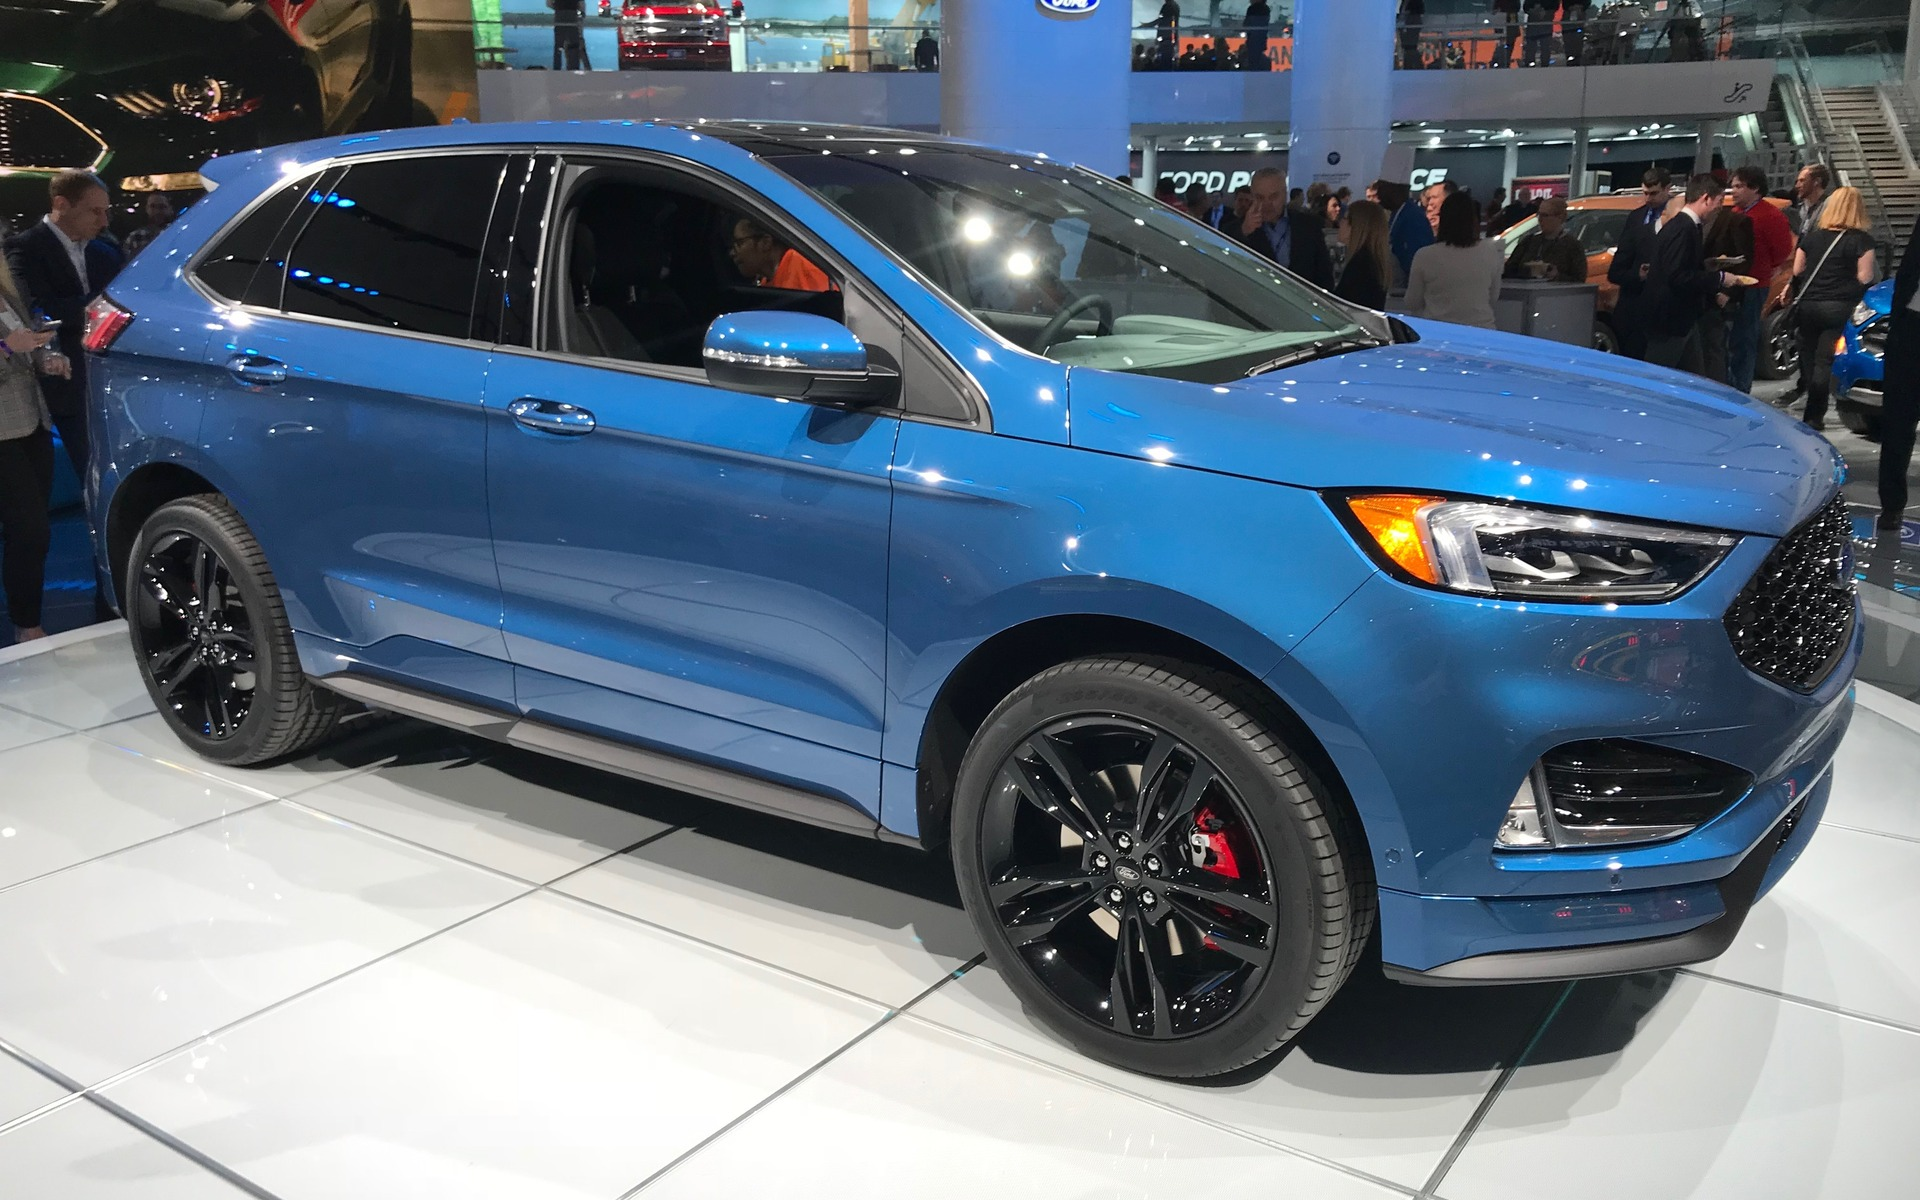 2019 ford edge this is it the car guide. Black Bedroom Furniture Sets. Home Design Ideas